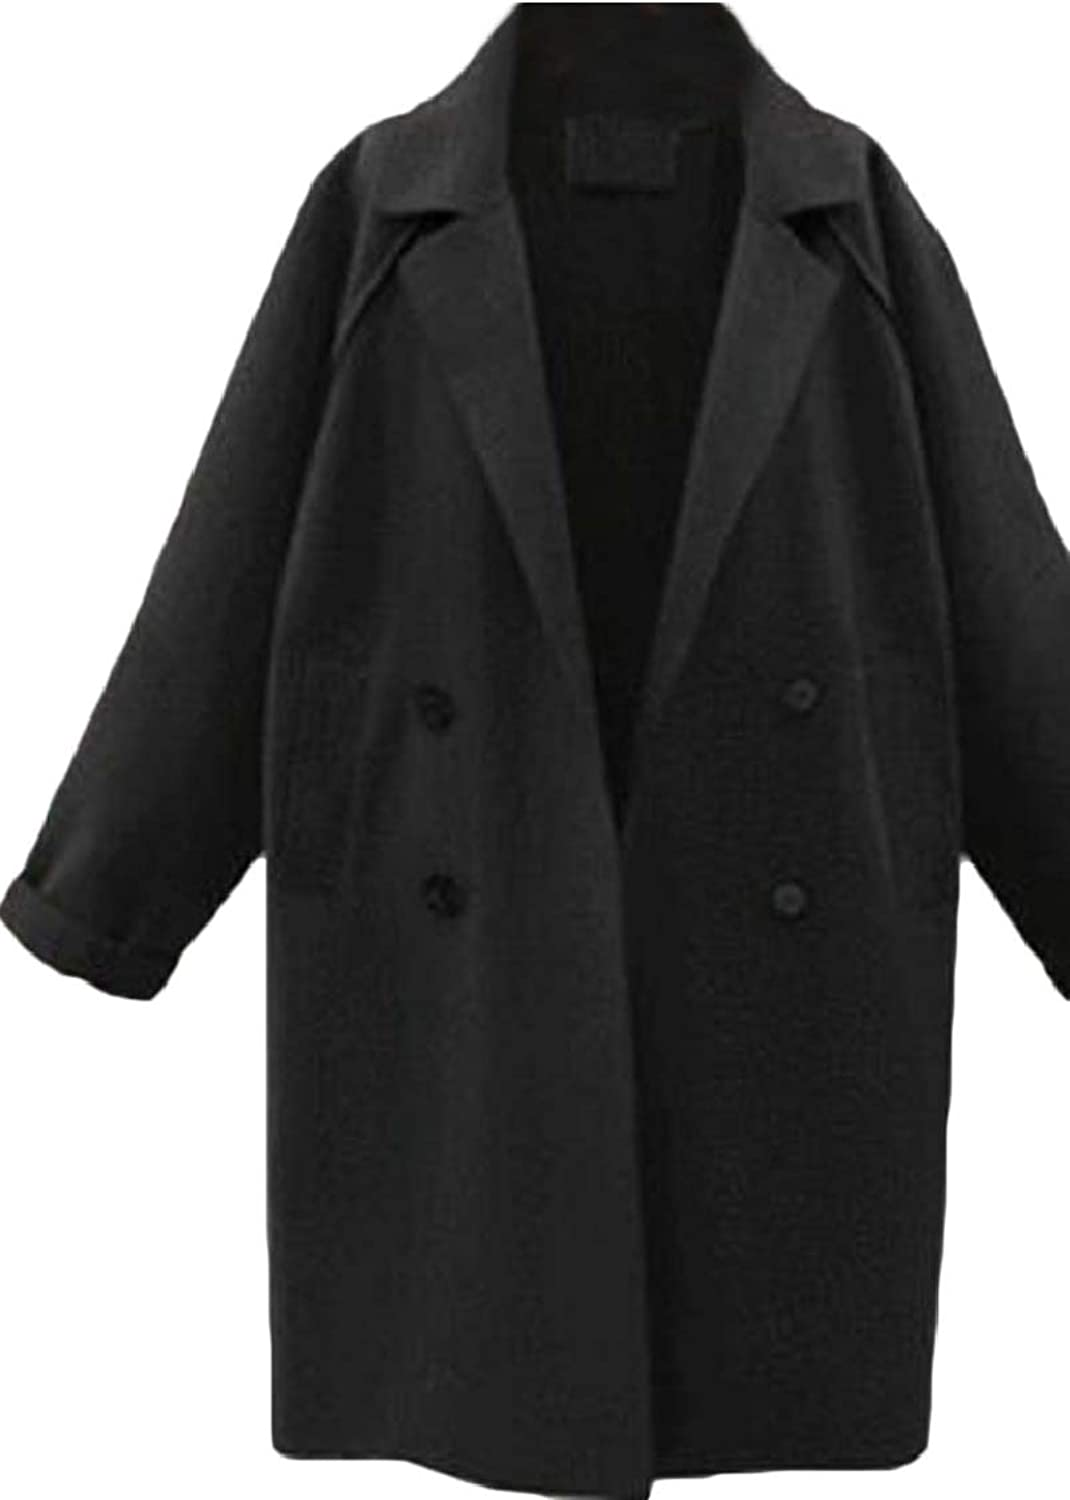 LKCENCA Womens Long Sleeve Lapel Collar Double Breasted Wool Blend Trench Coat